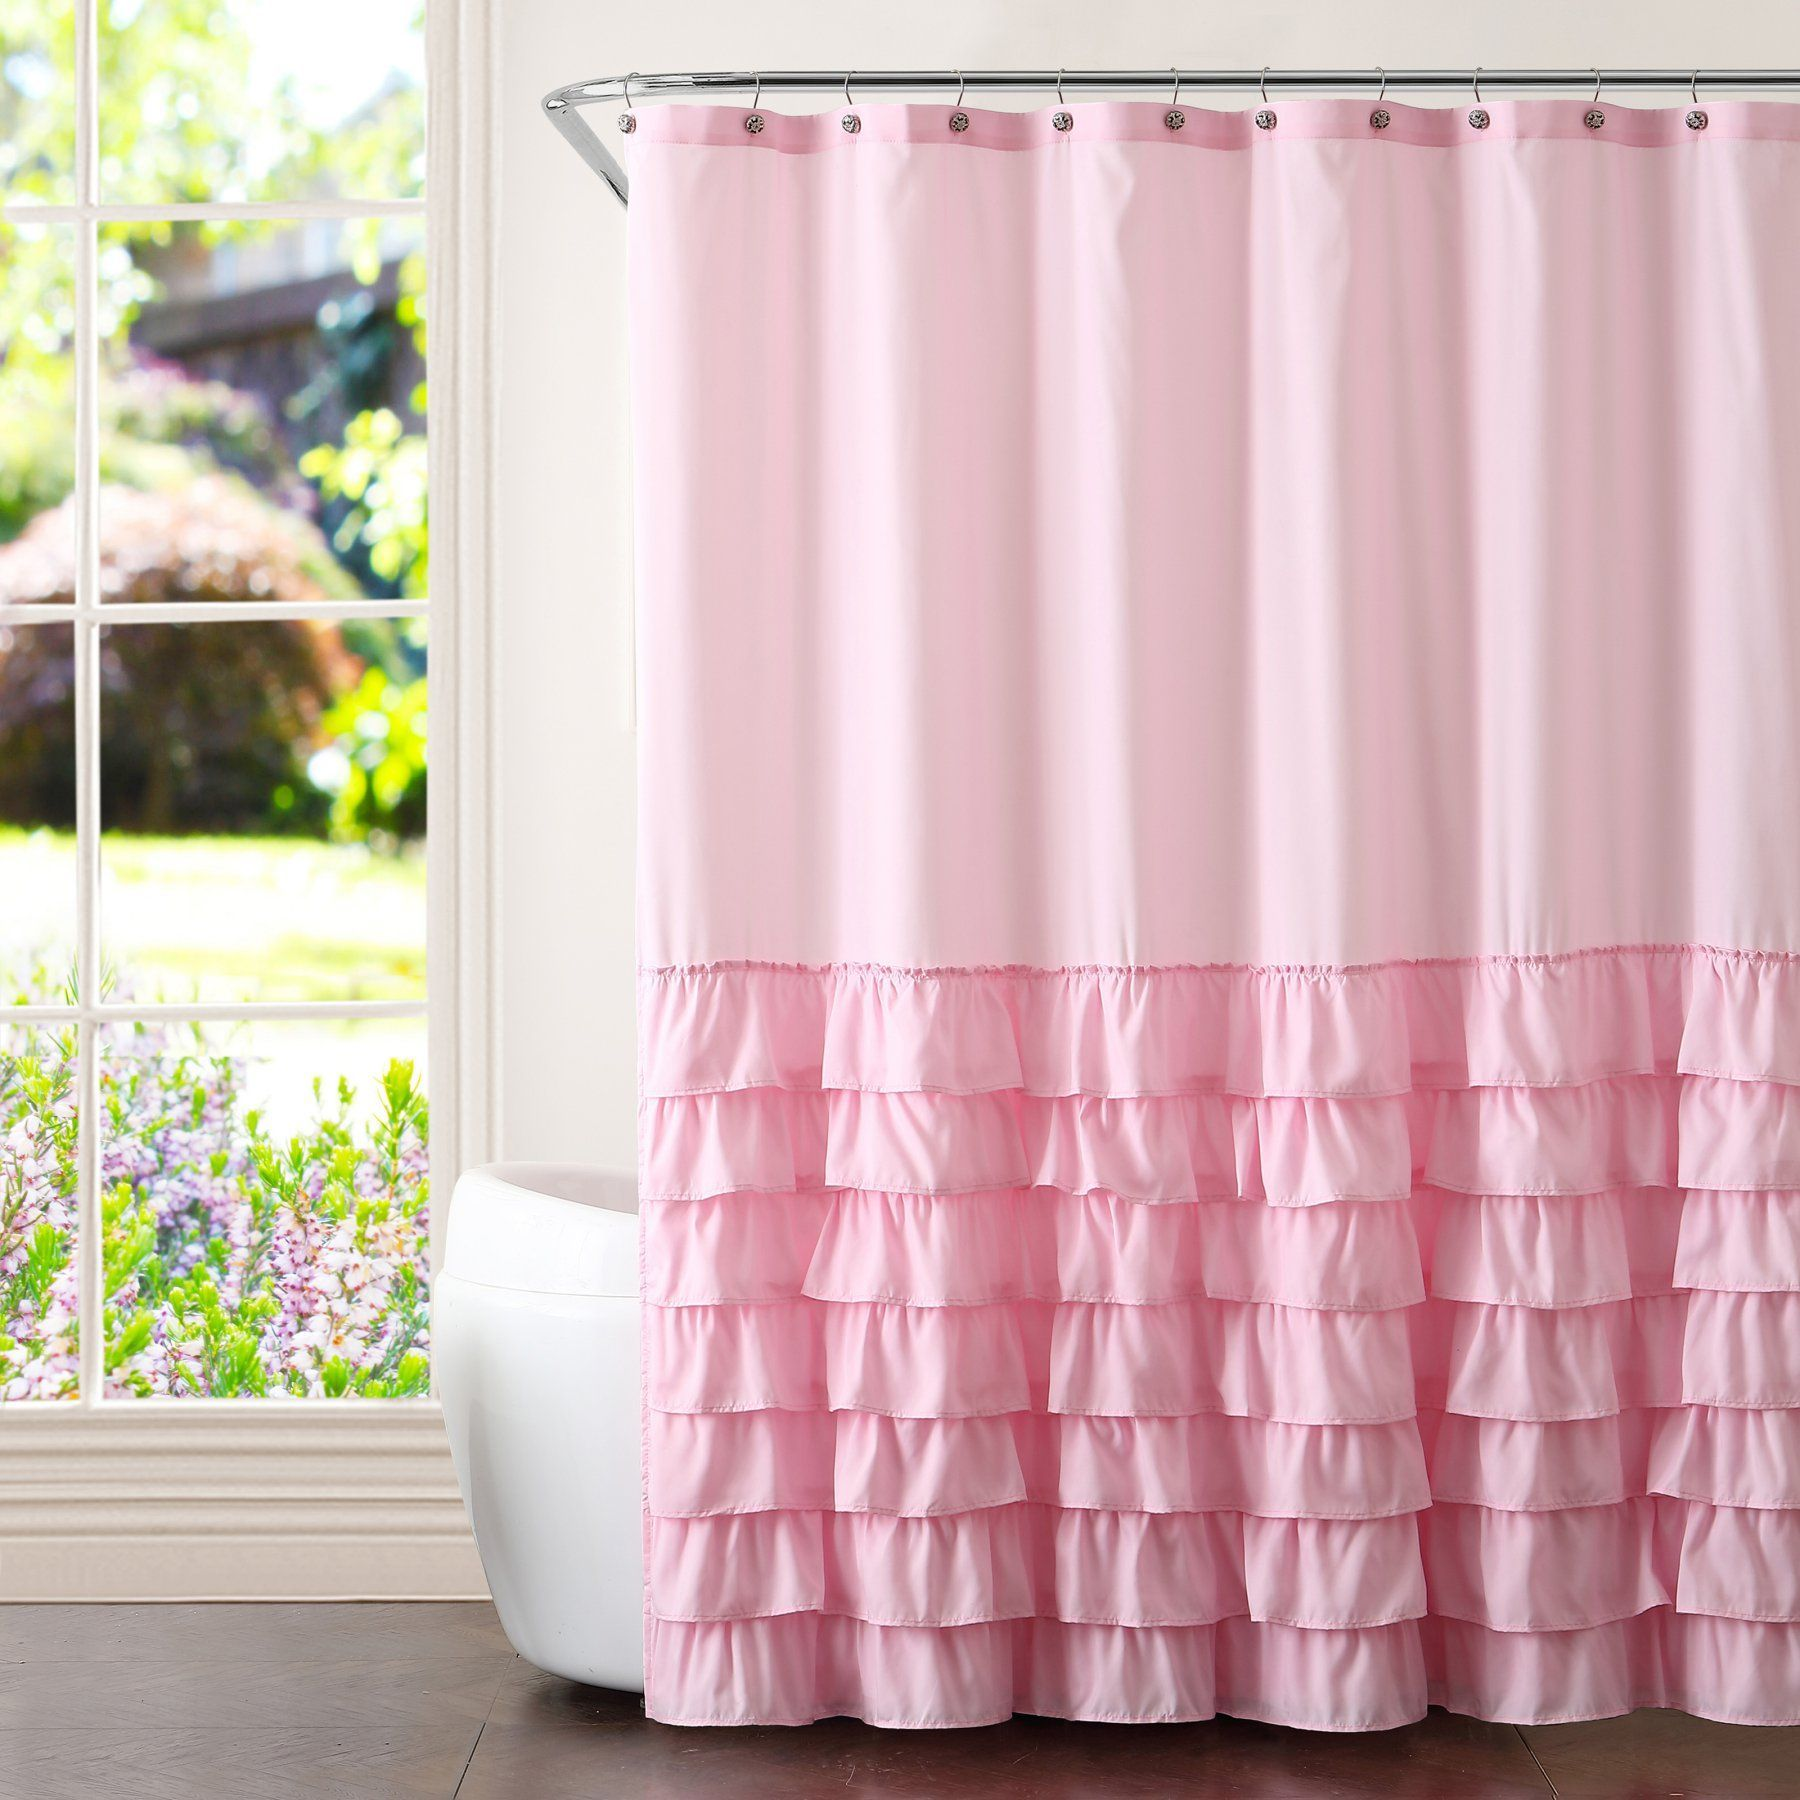 Better Homes and Gardens Ruffled Shower Curtain with Curtain Hooks